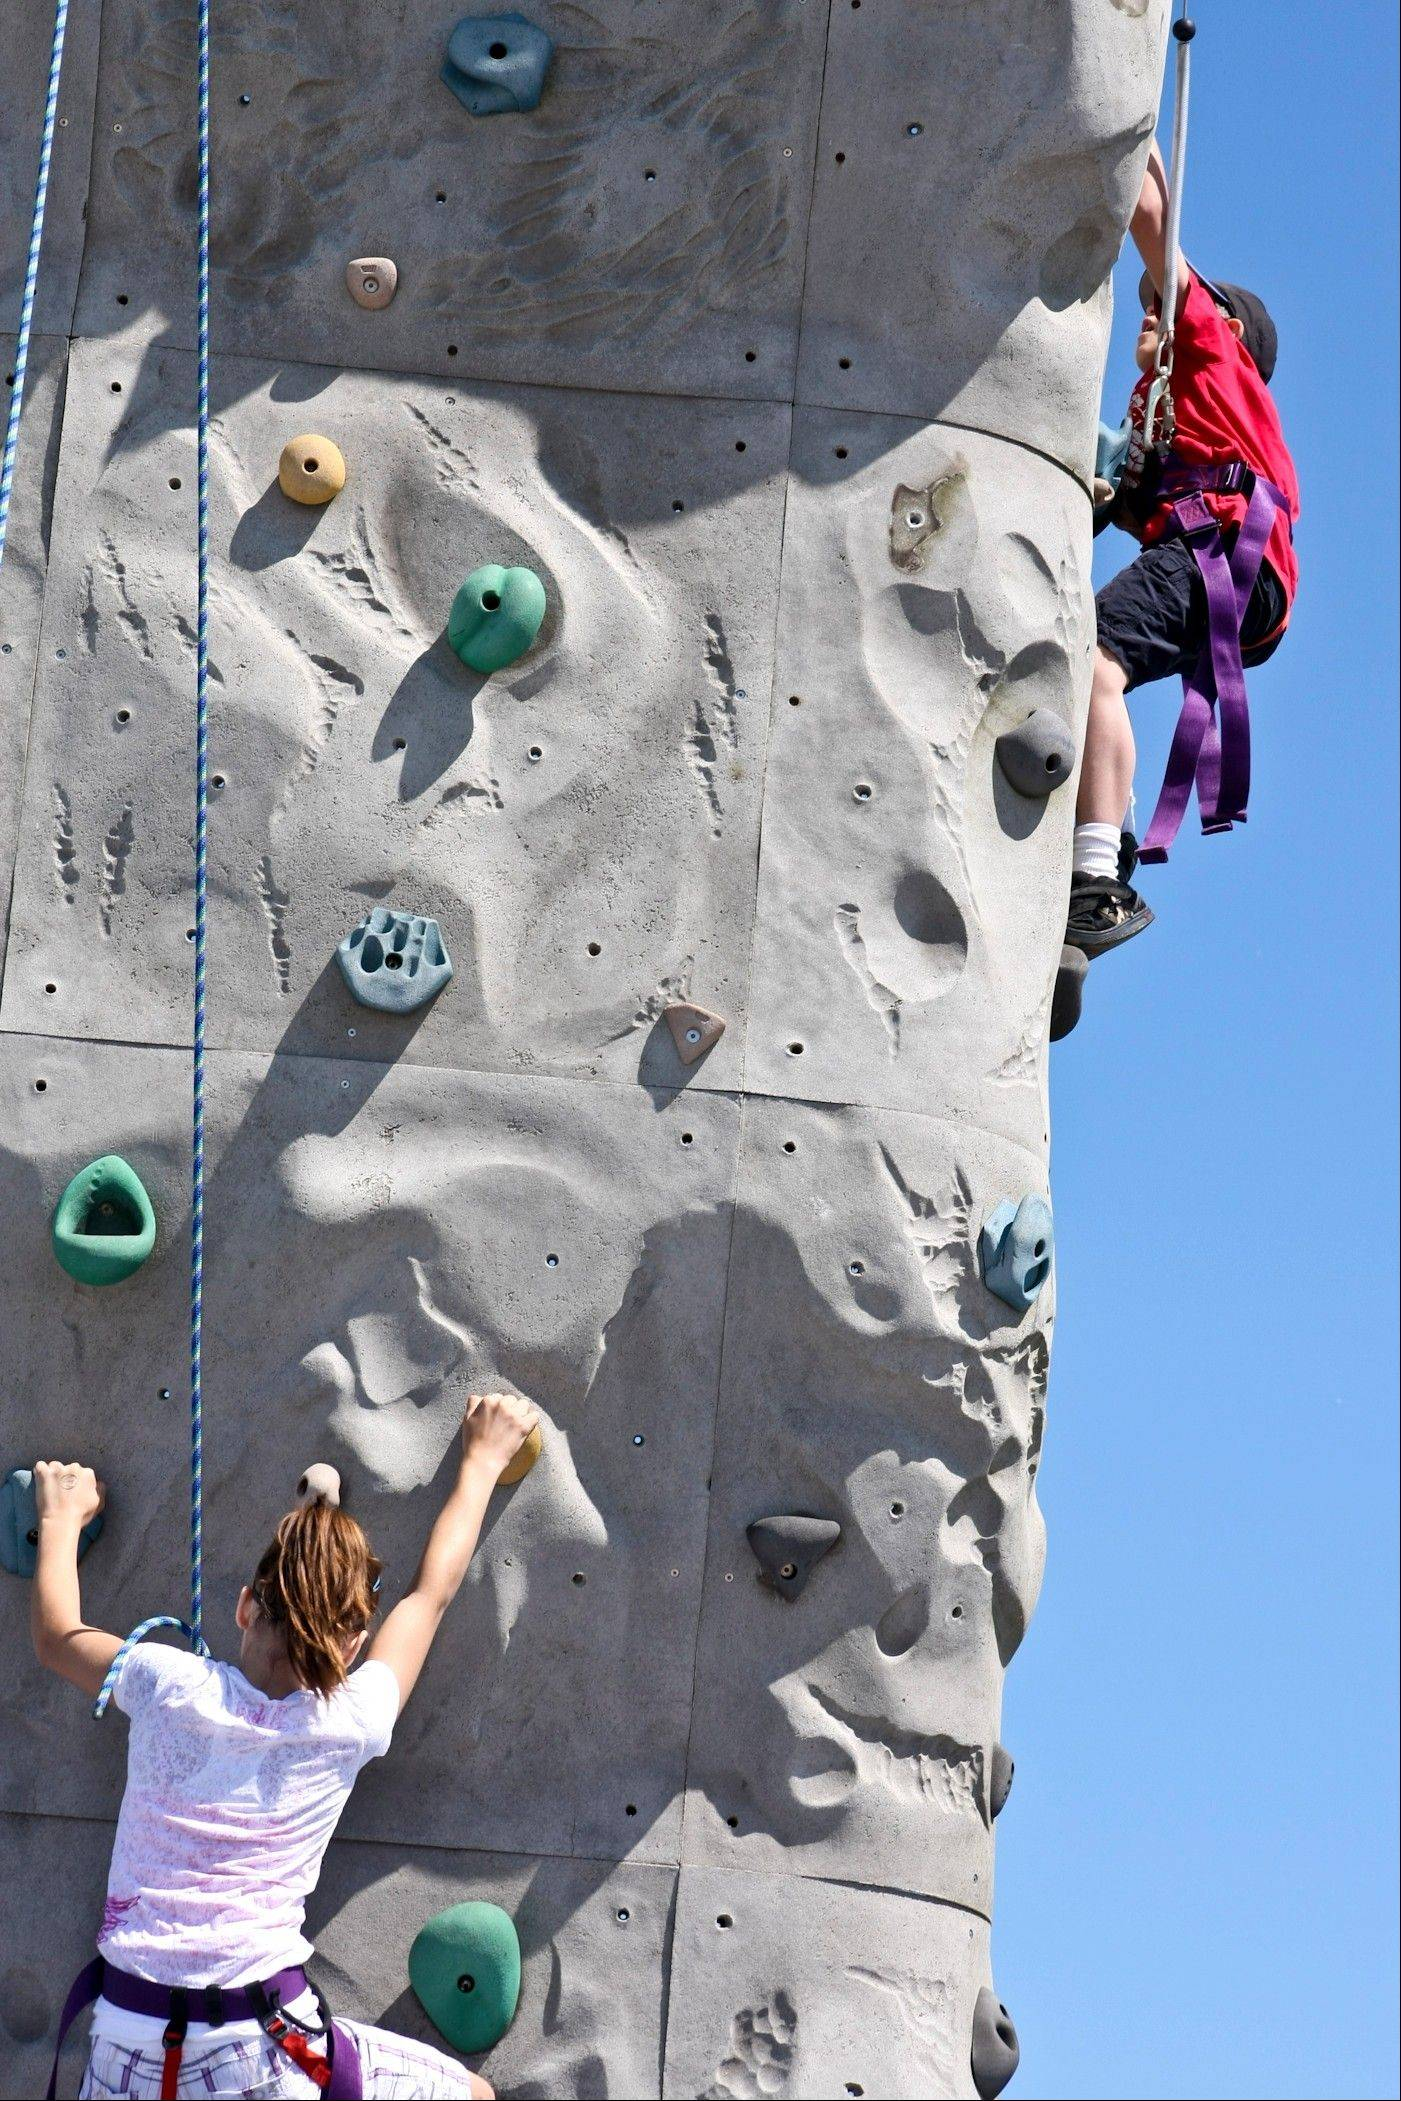 Visitors to Carol Stream's JustPlay! Sports and Recreation Festival can try scaling a 25-foot climbing tower among the many adventure activities and sports included in the event Saturday and Sunday.